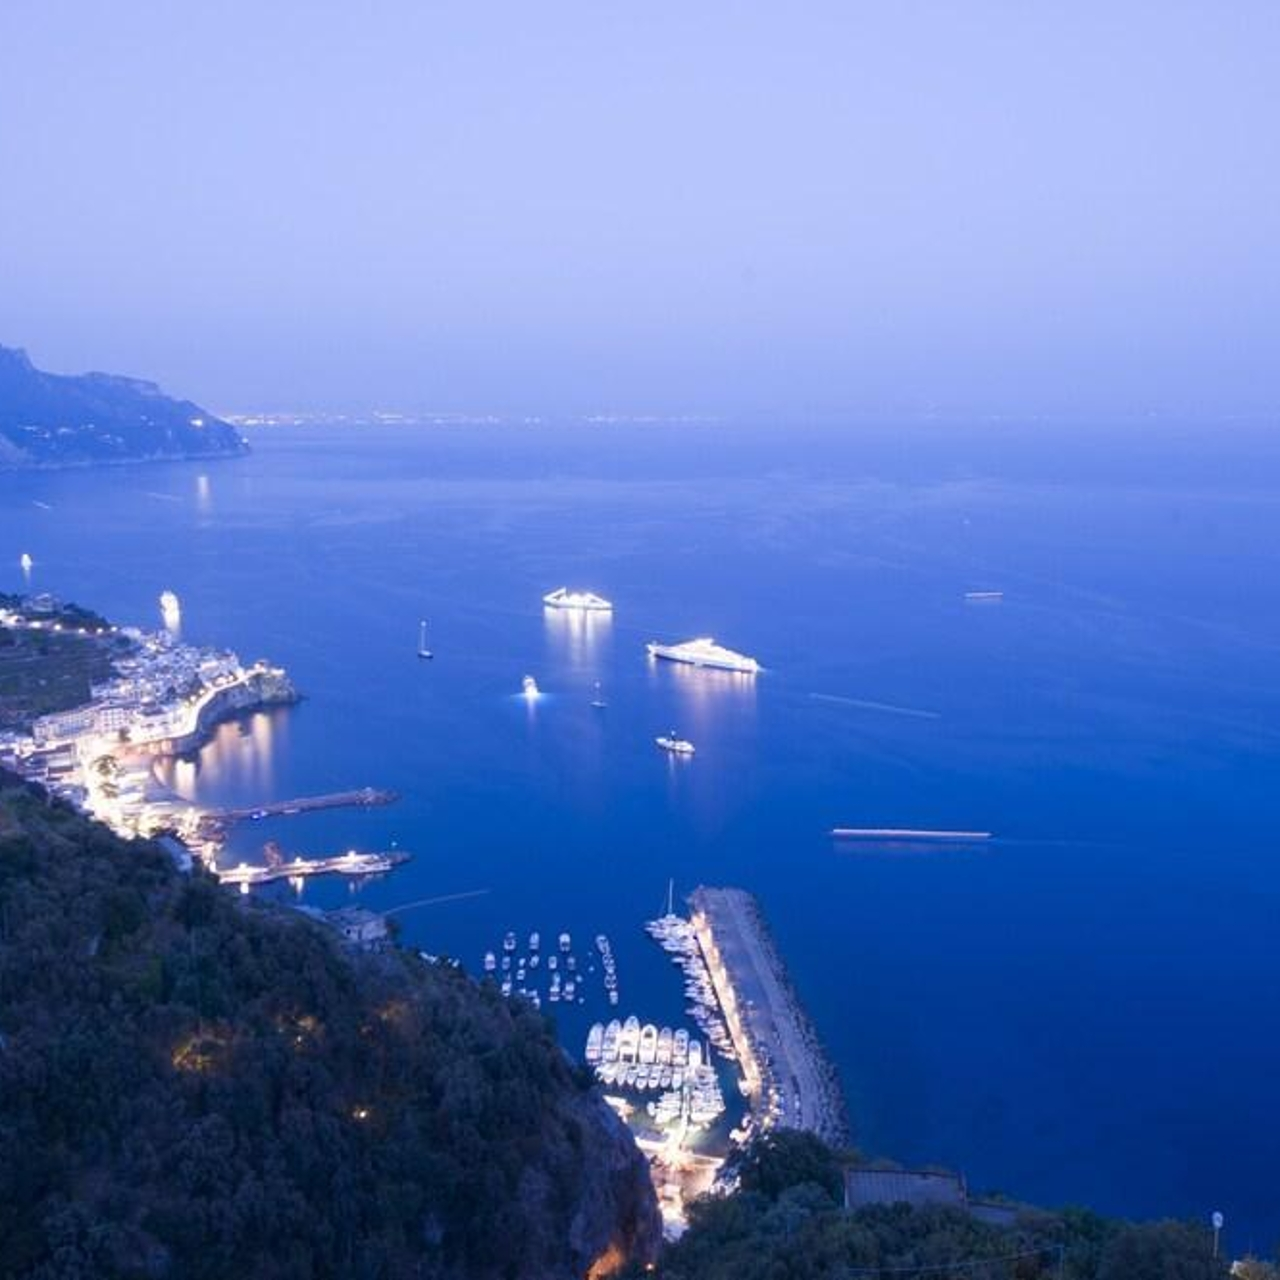 Grand Hotel Excelsior Amalfi Italy At Hrs With Free Services